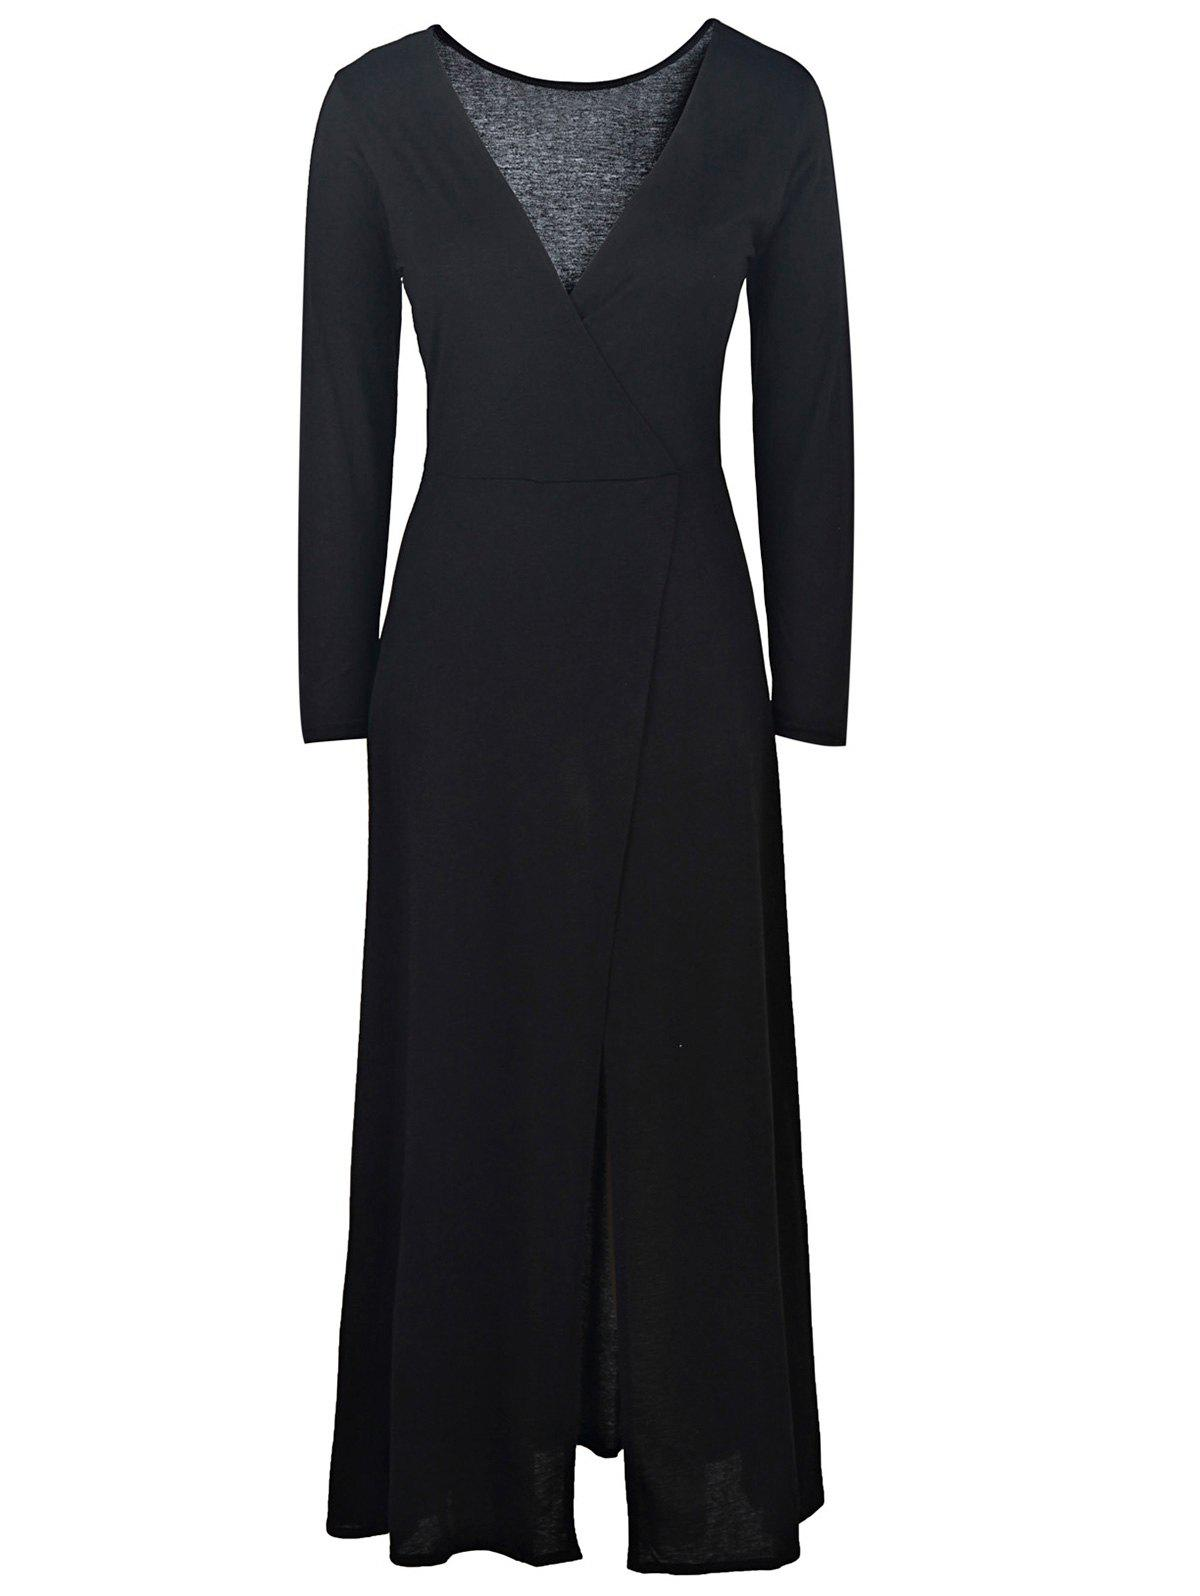 Sexy Black Plunging Neck High Slit Long Sleeve Dress For Women - BLACK M